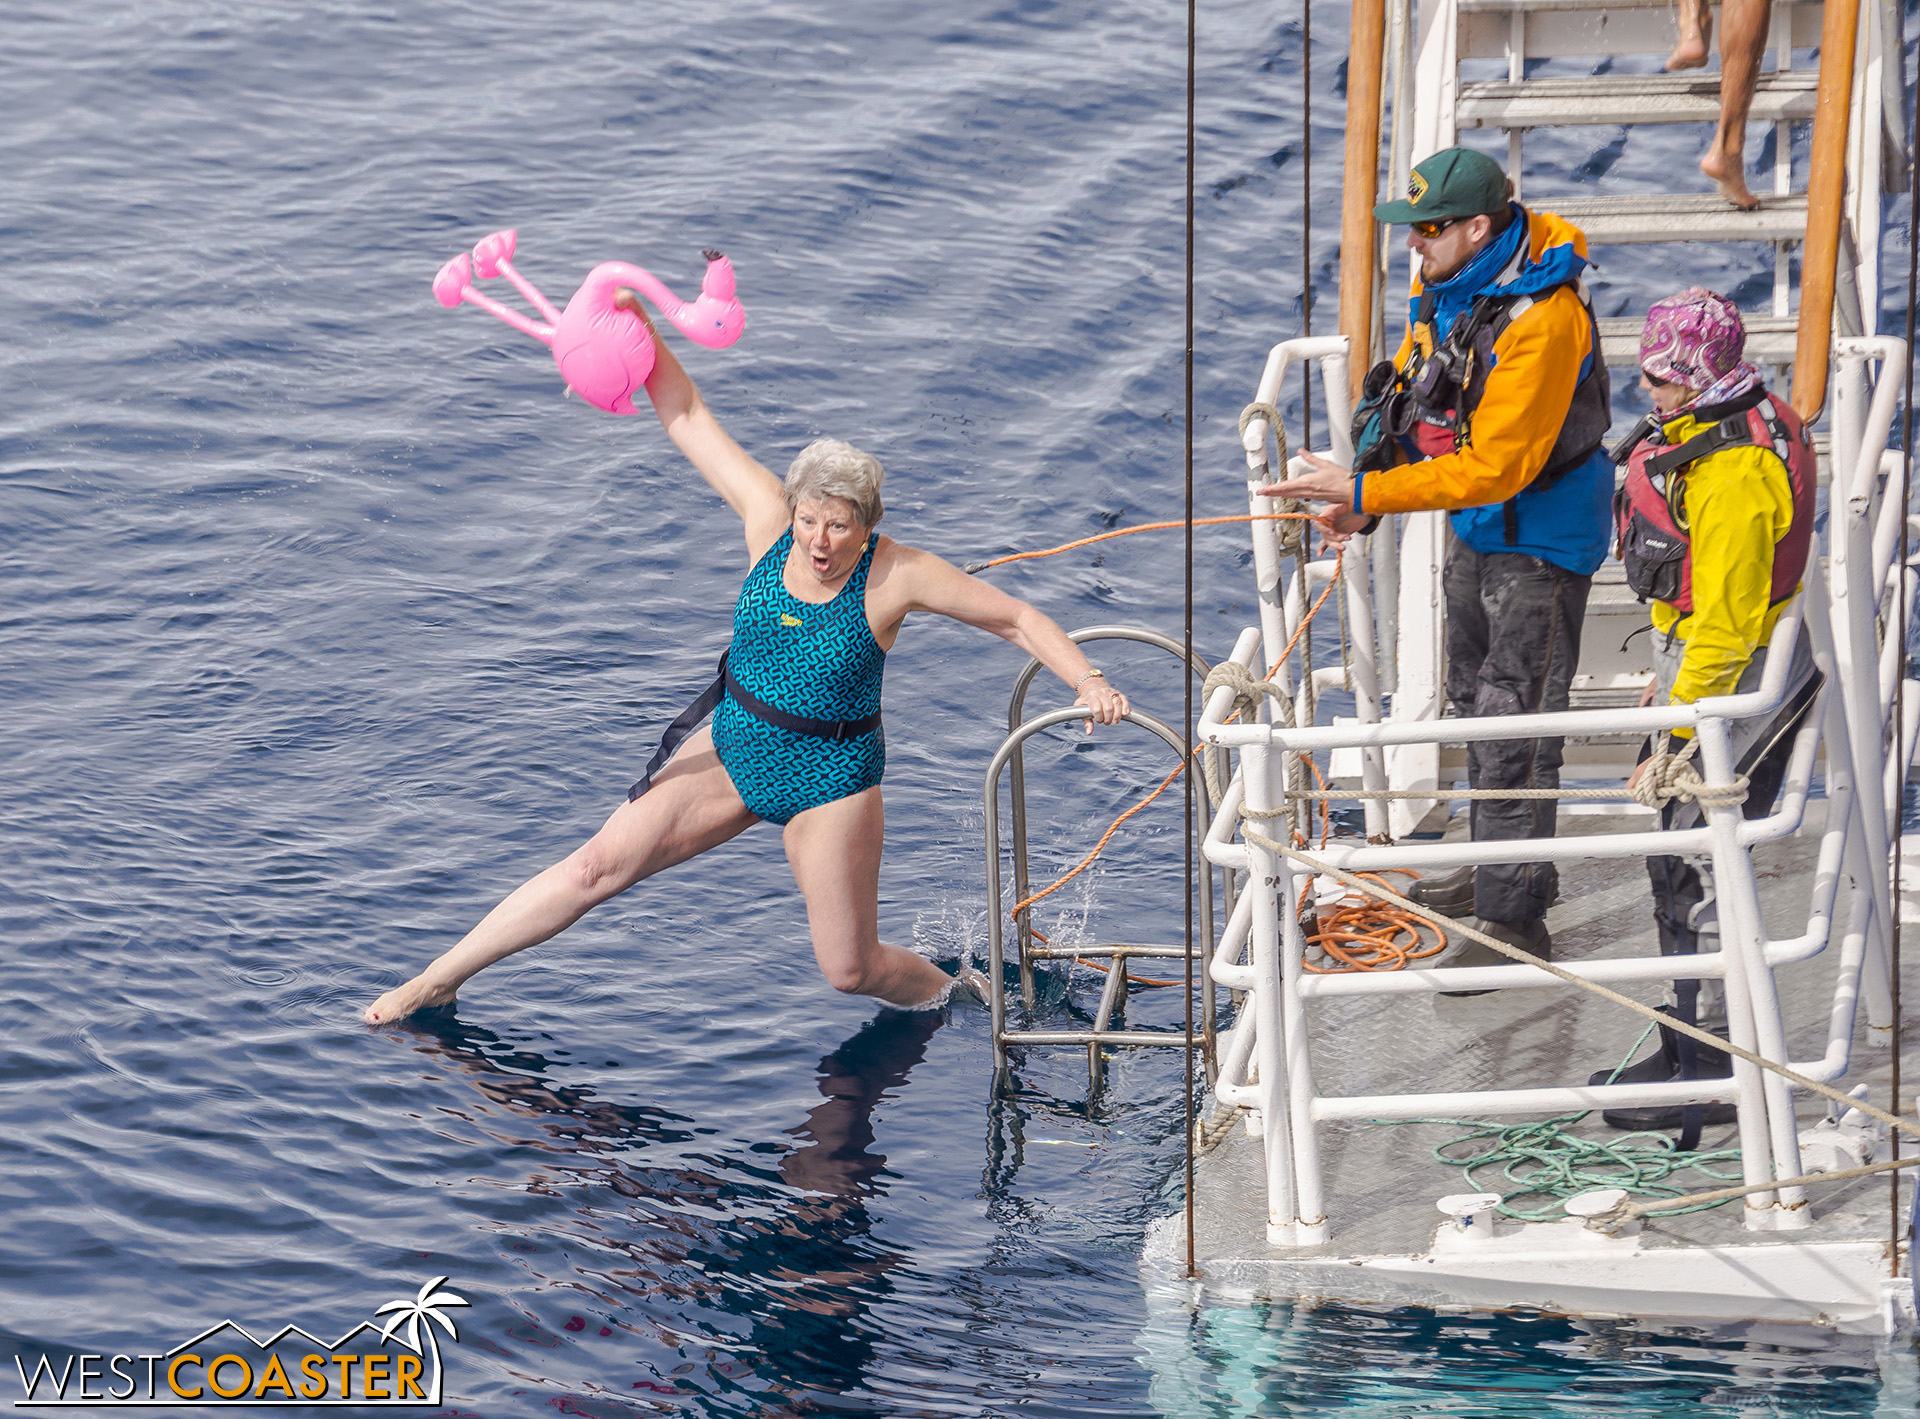 One of the first guests to dive in… this lady who brings a flamingo as company!